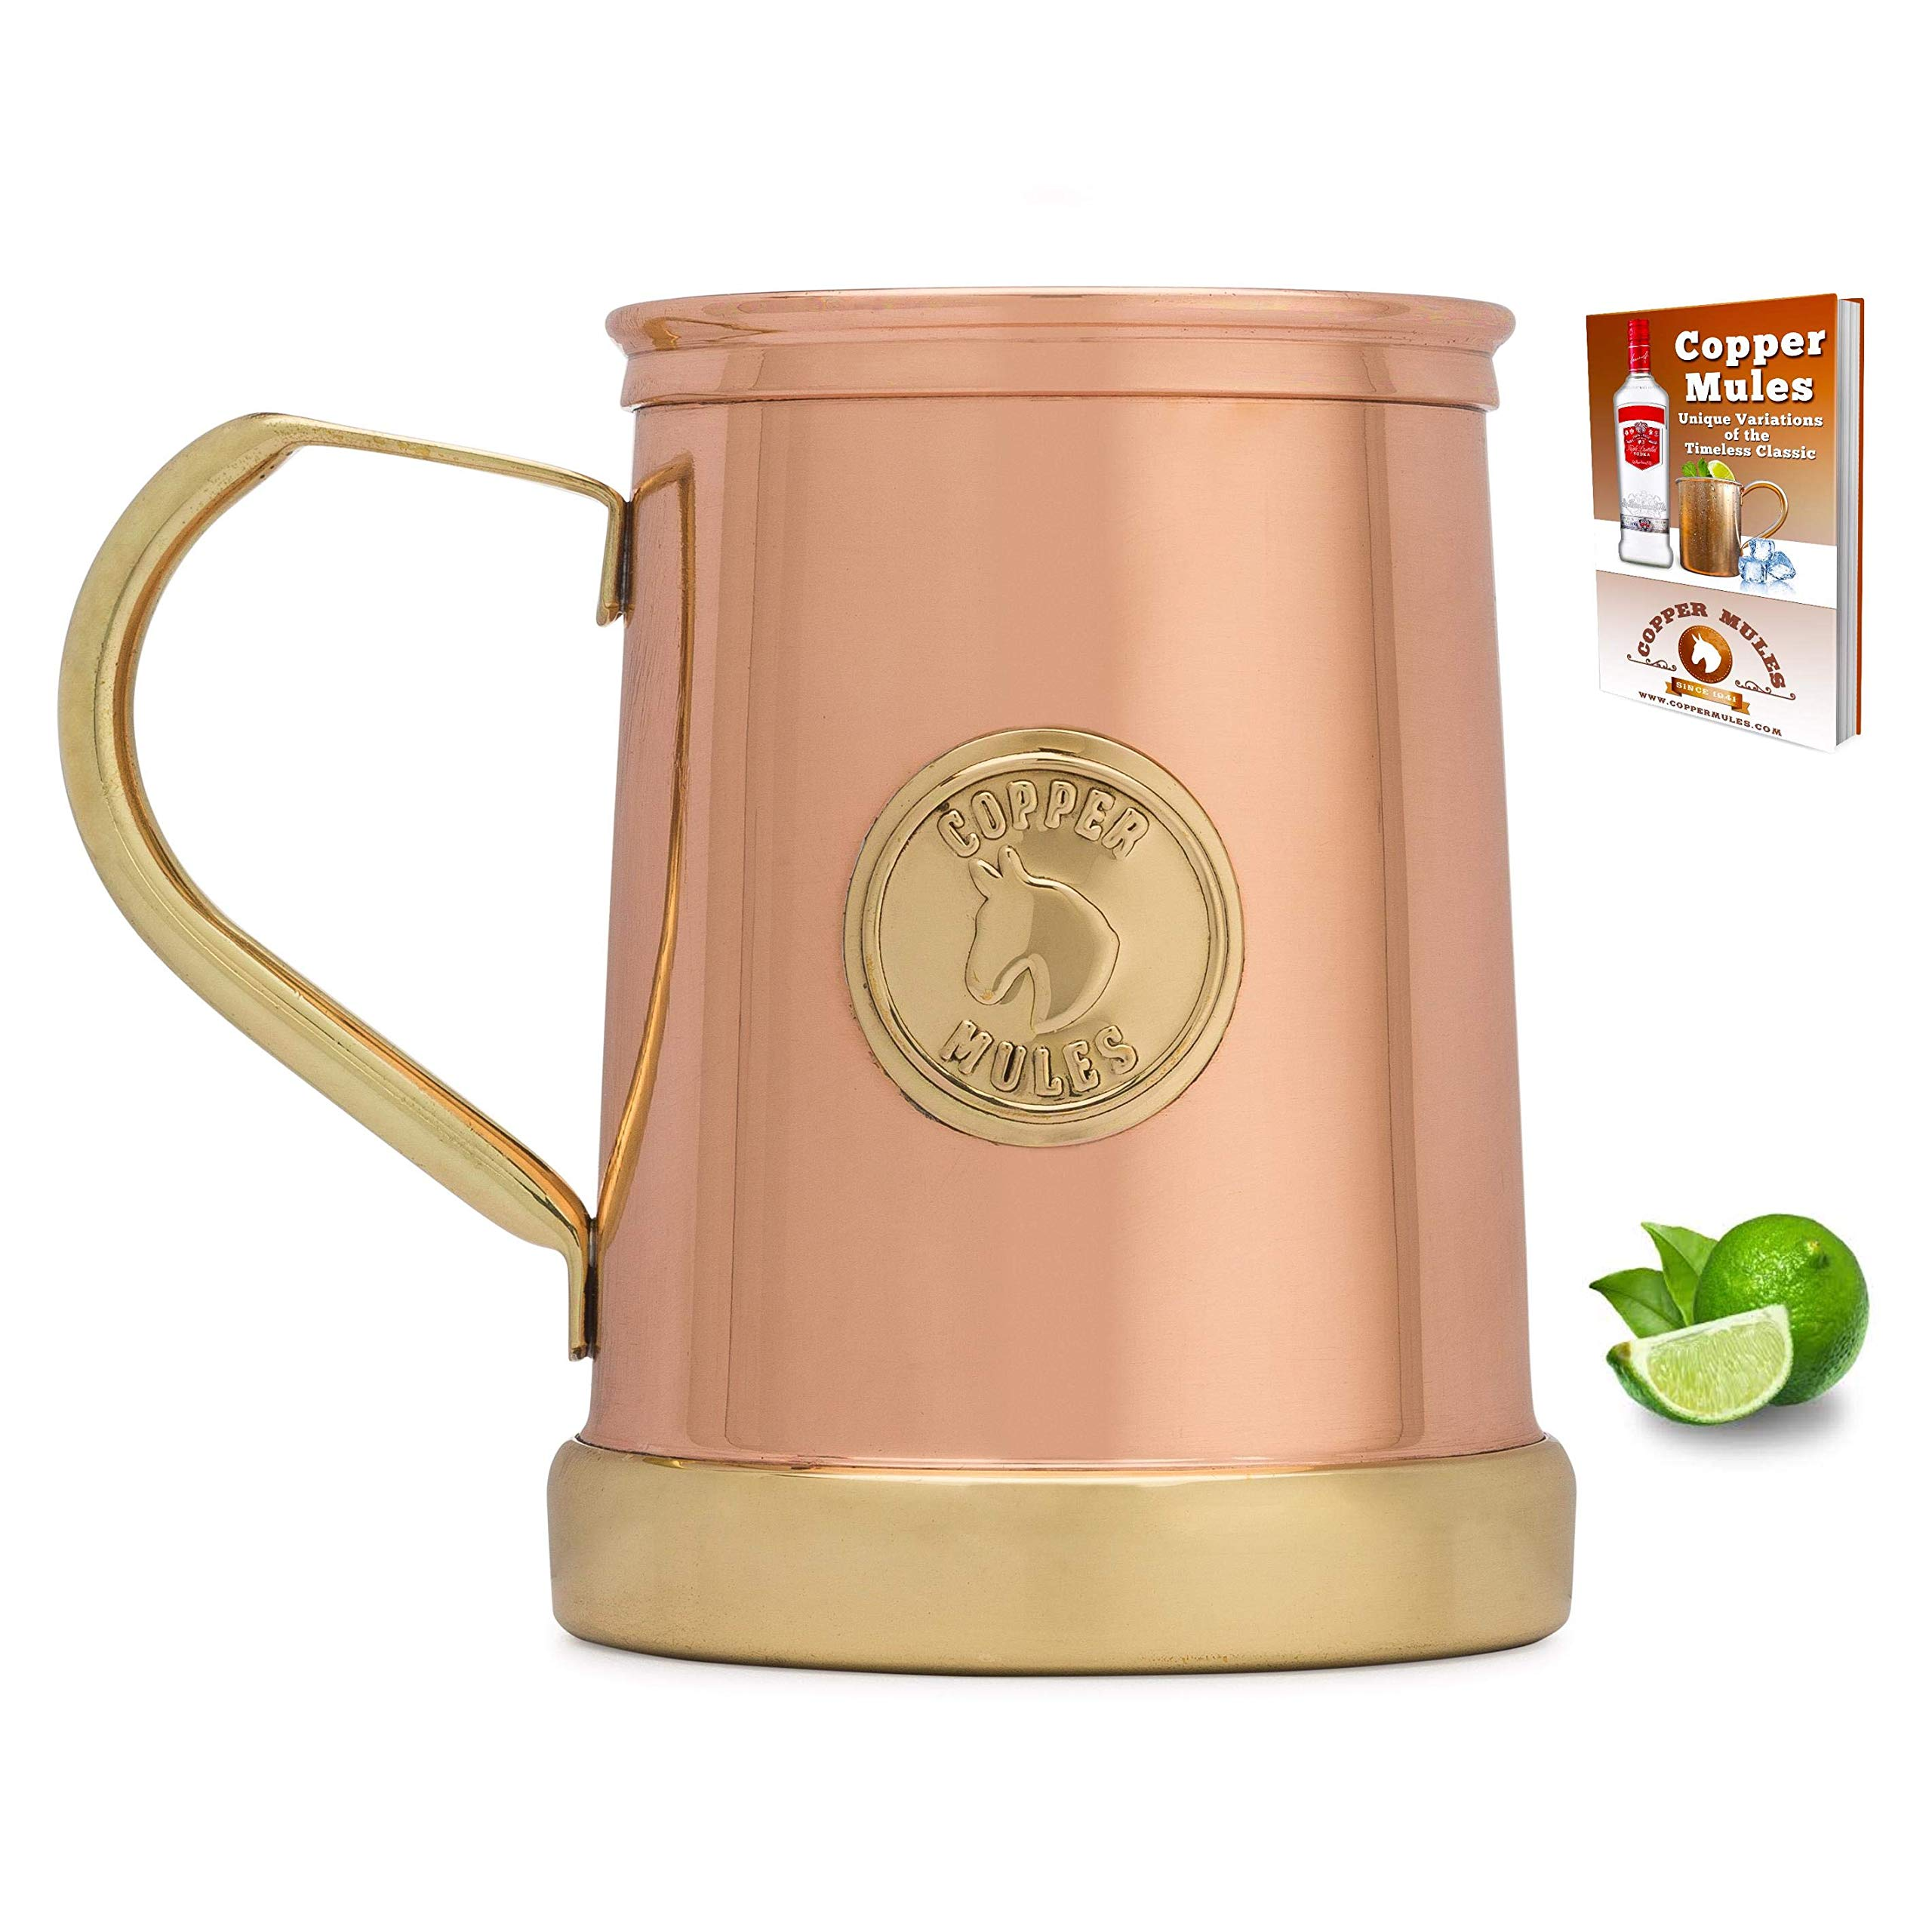 Moscow Mule Copper Mug by Copper Mules – Innovative Patent Pending Design is 100% HANDCRAFTED of Pure Copper and Brass - ULTRA comfort handle - Solid Brass Base - 335gram Empty Weight - holds 18oz